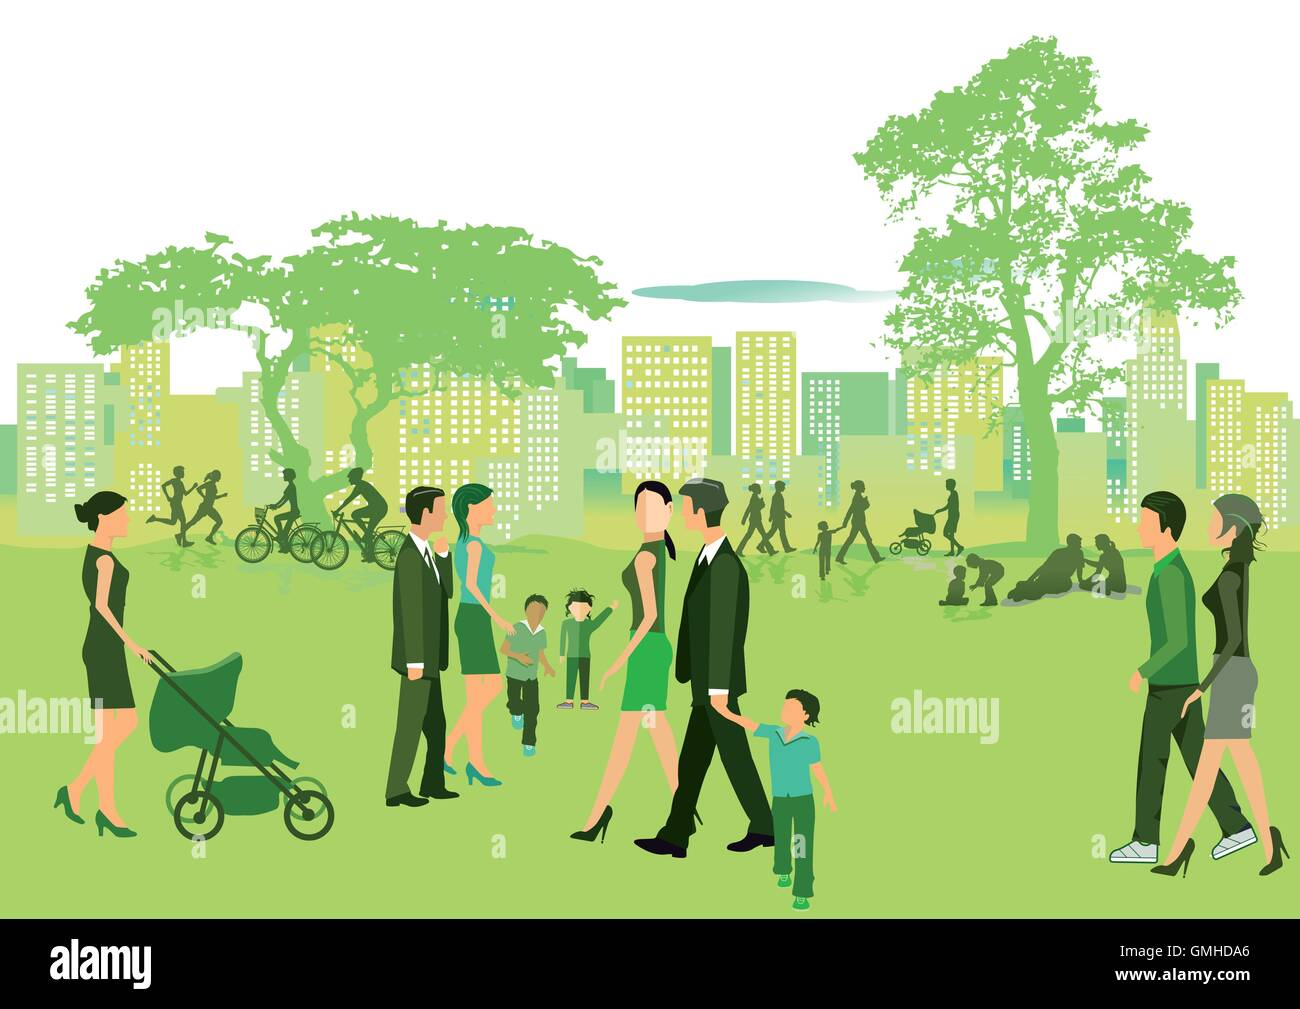 Summer in the park with people walking - Stock Vector